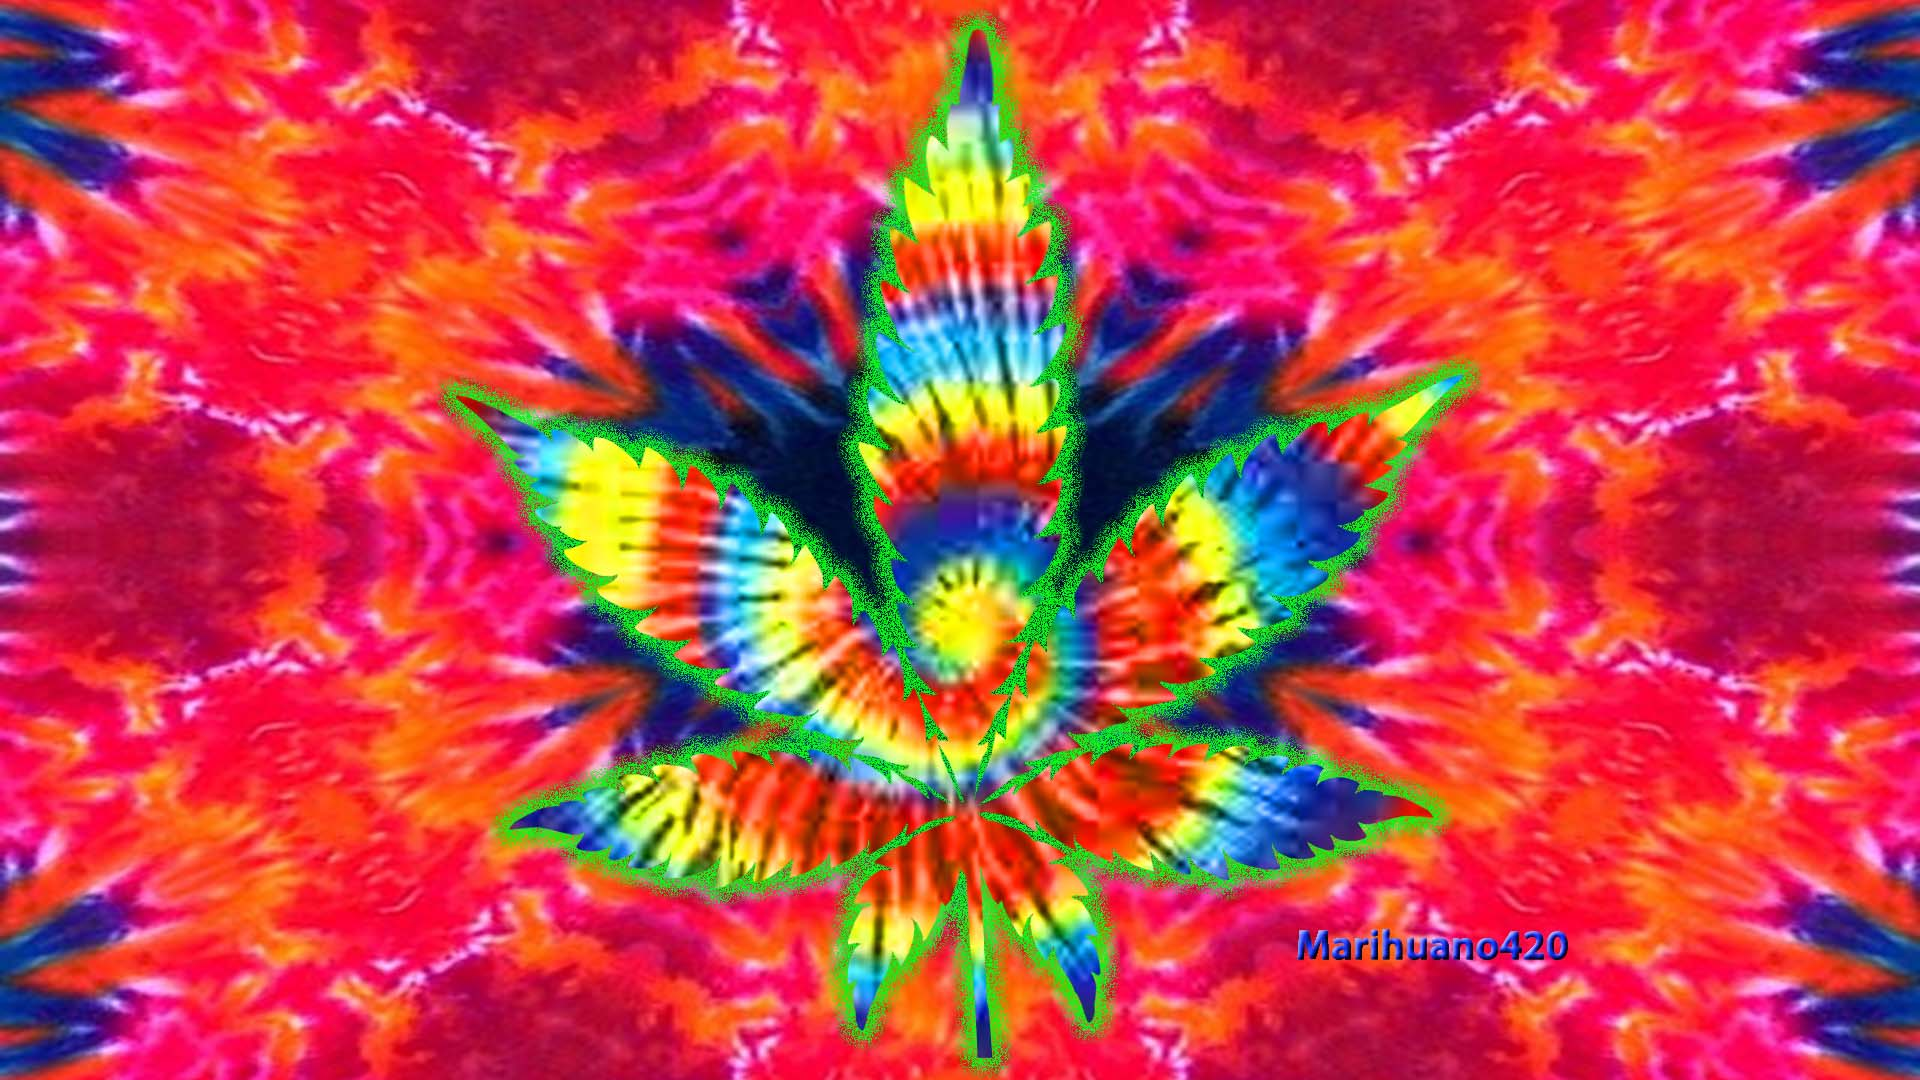 Trippy Weed Backgrounds Tumblr Hippie wallpaper weed 1920x1080